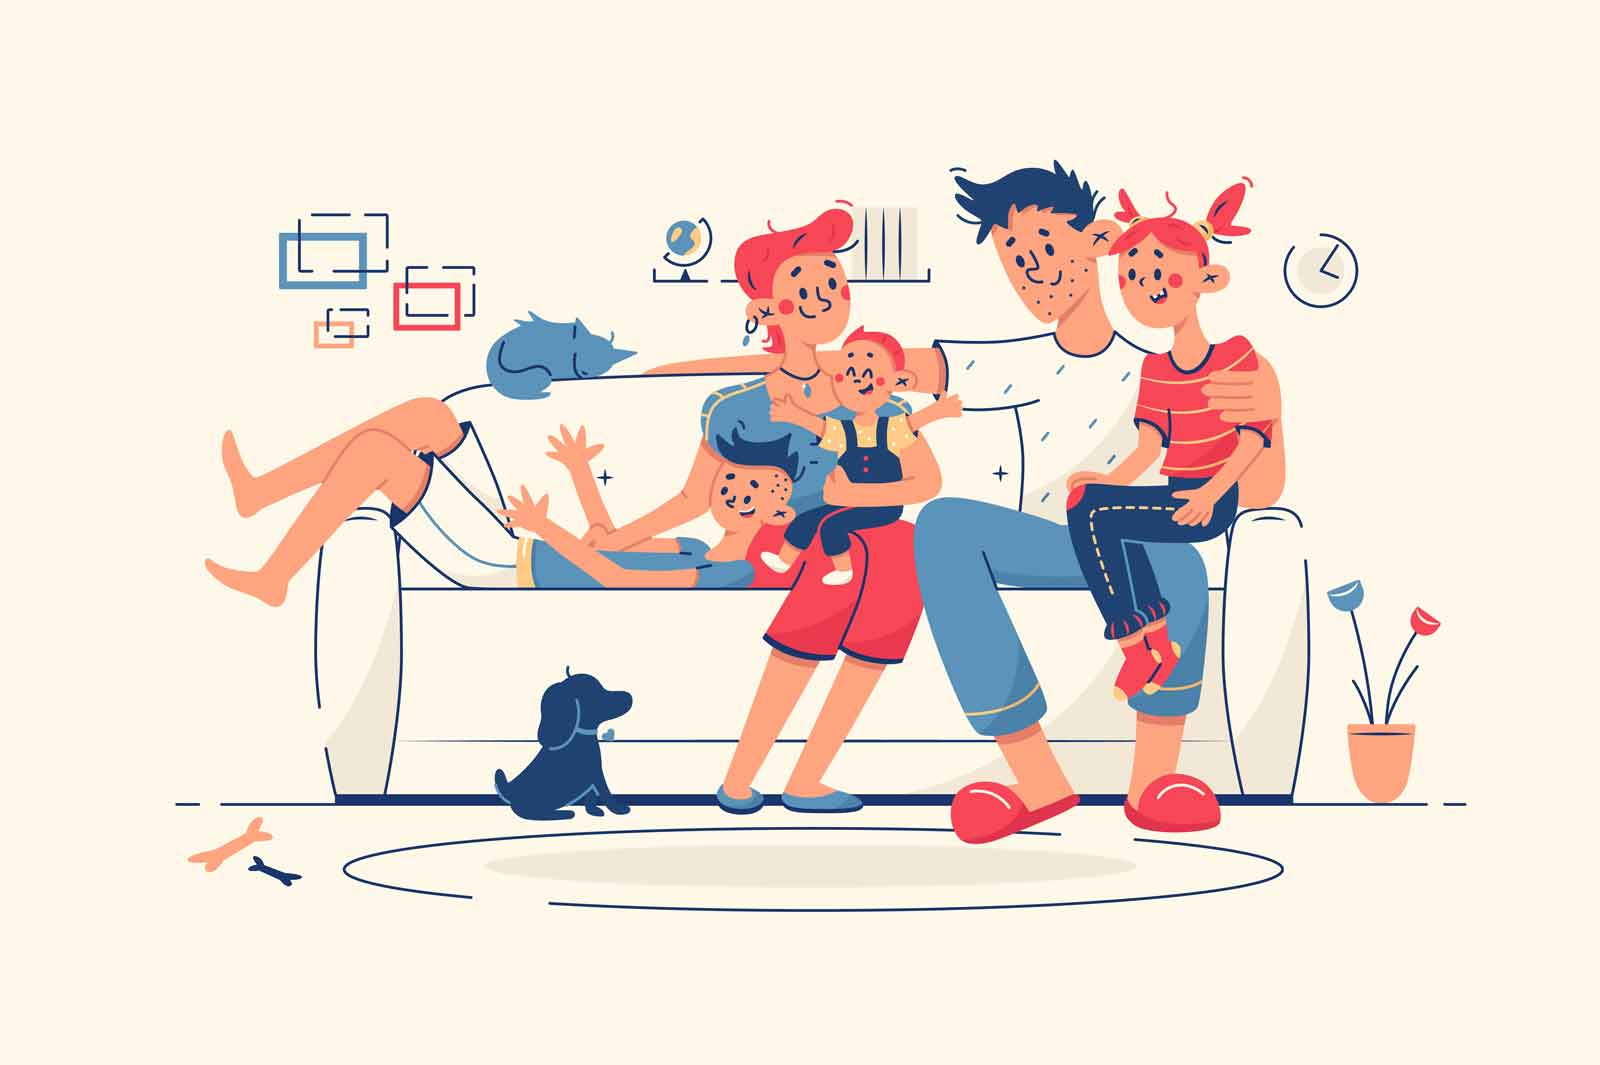 Family together at home on sofa vector illustration. Mum, dad, kids and domestic pet dog chill in living room flat style. Leisure, family time, weekend indoors concept. Isolated on beige background